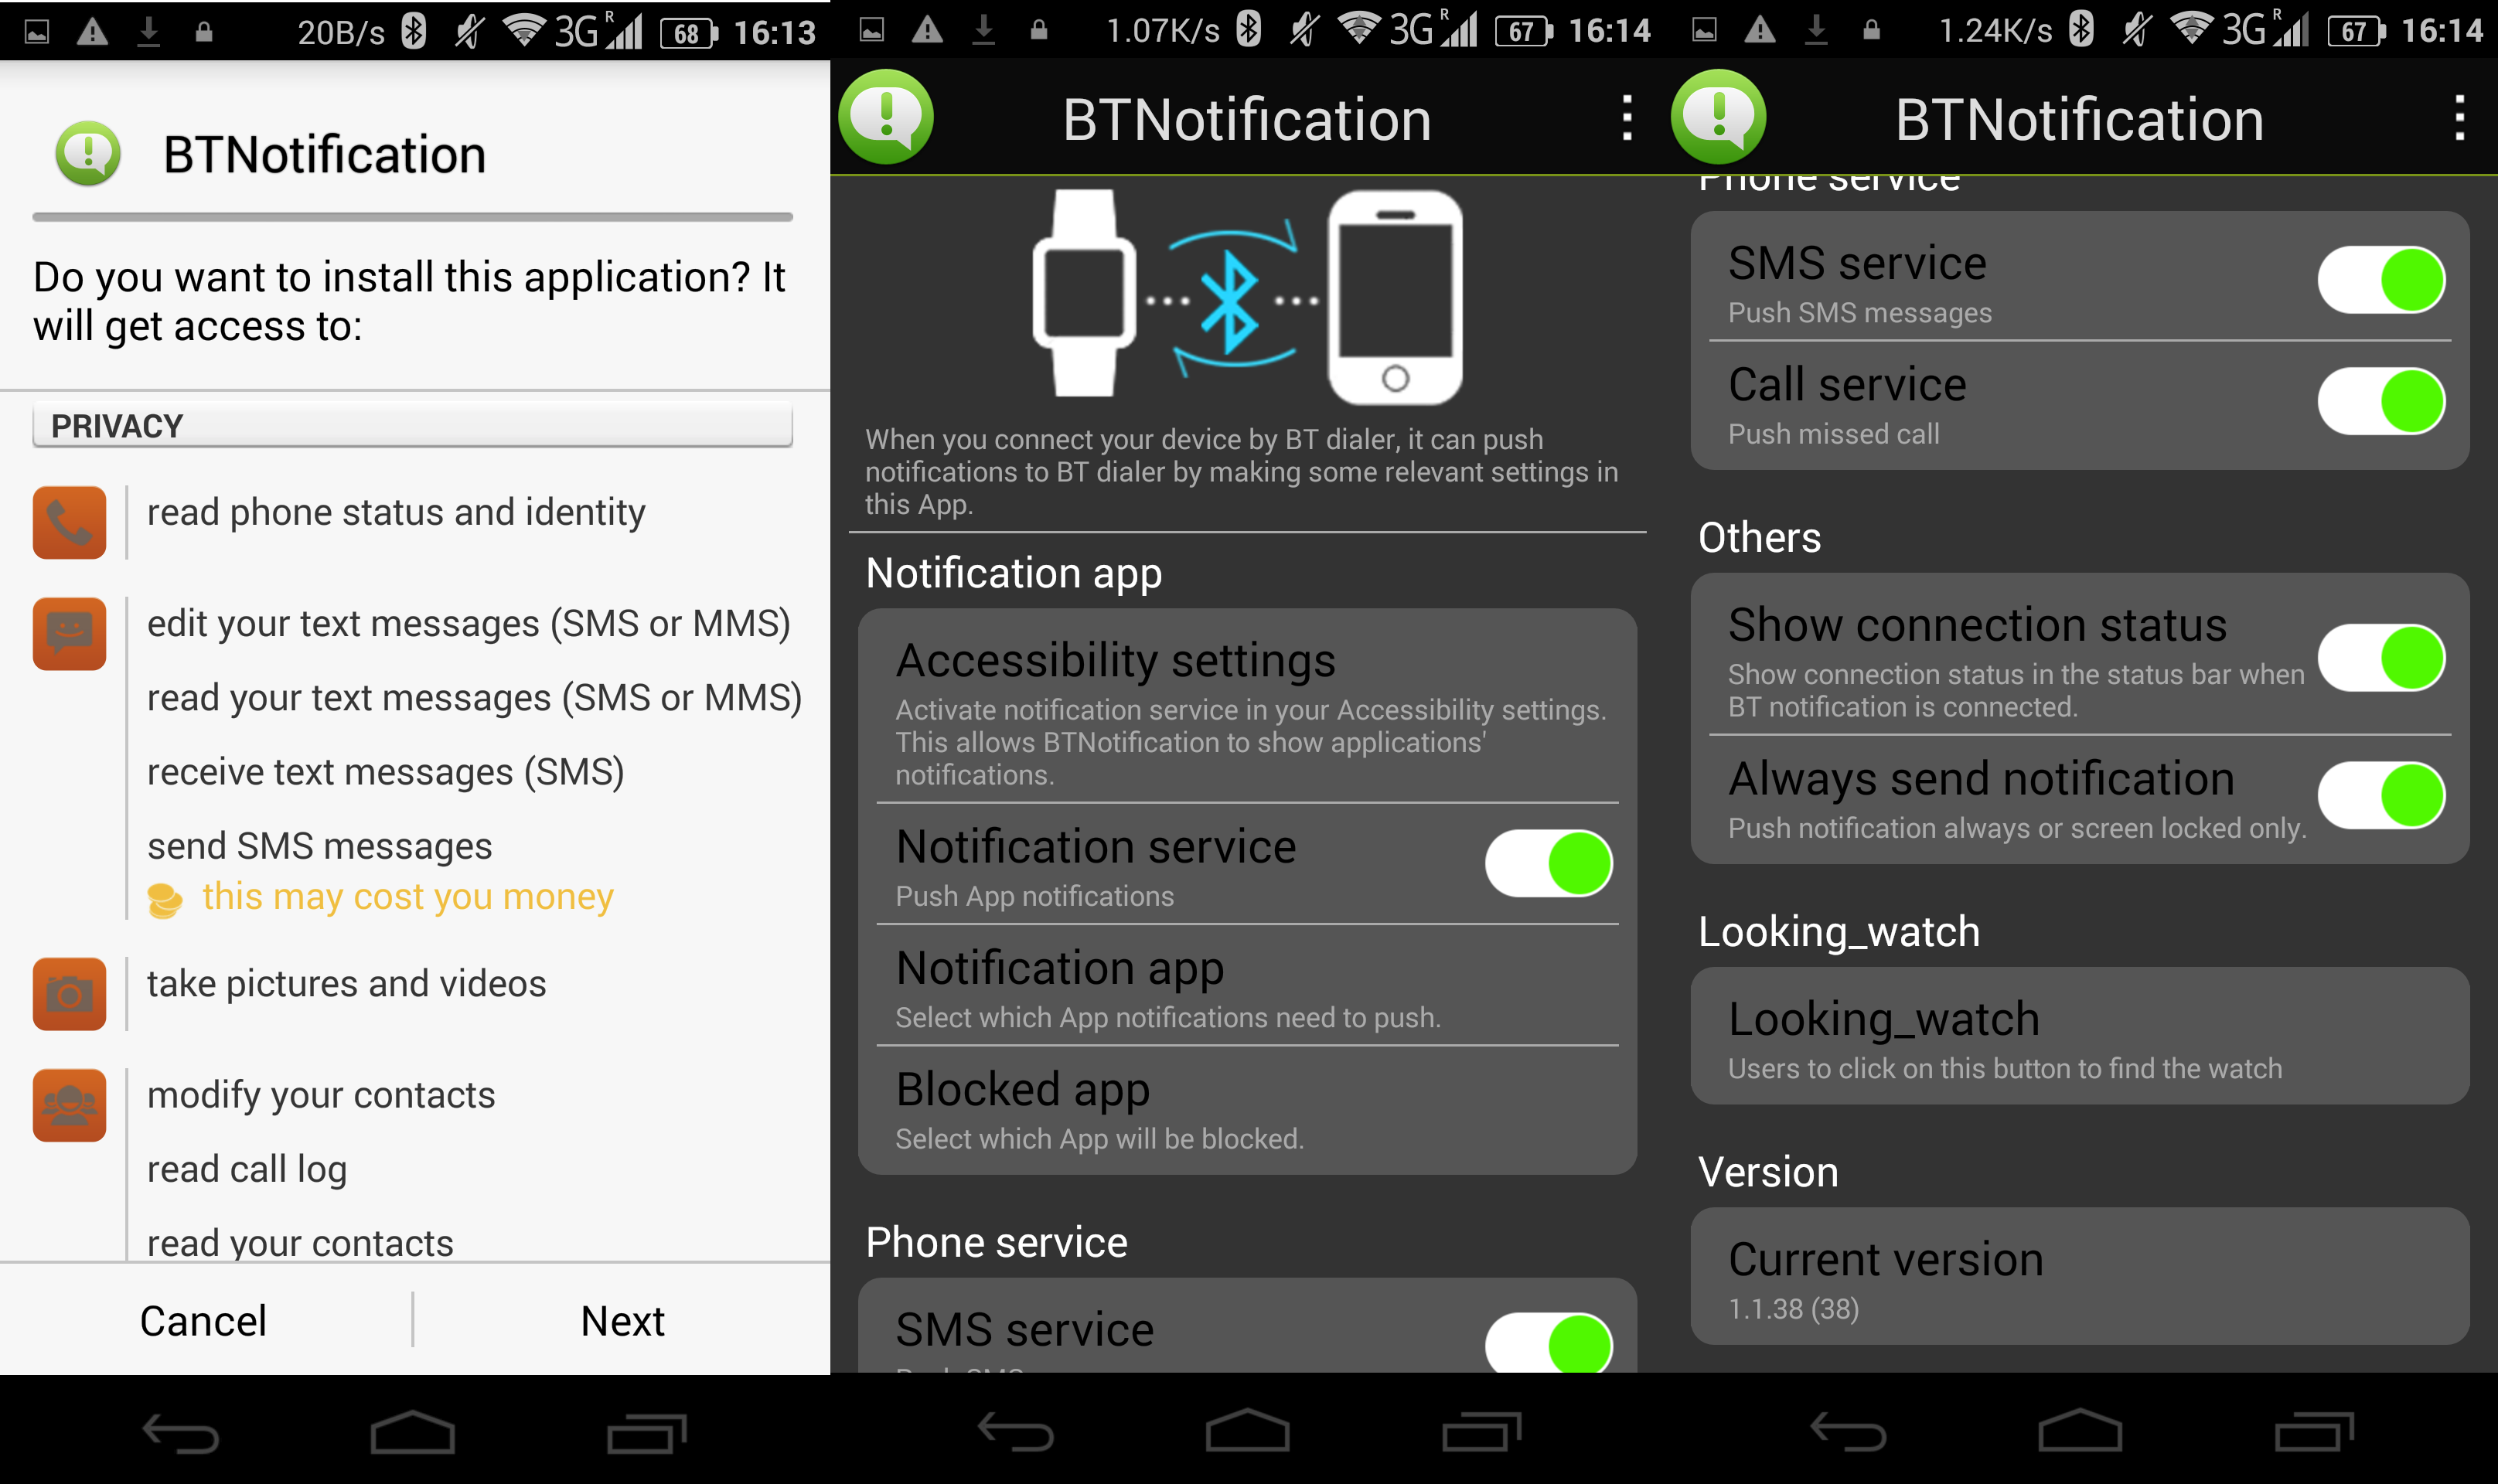 BT_Notification_App